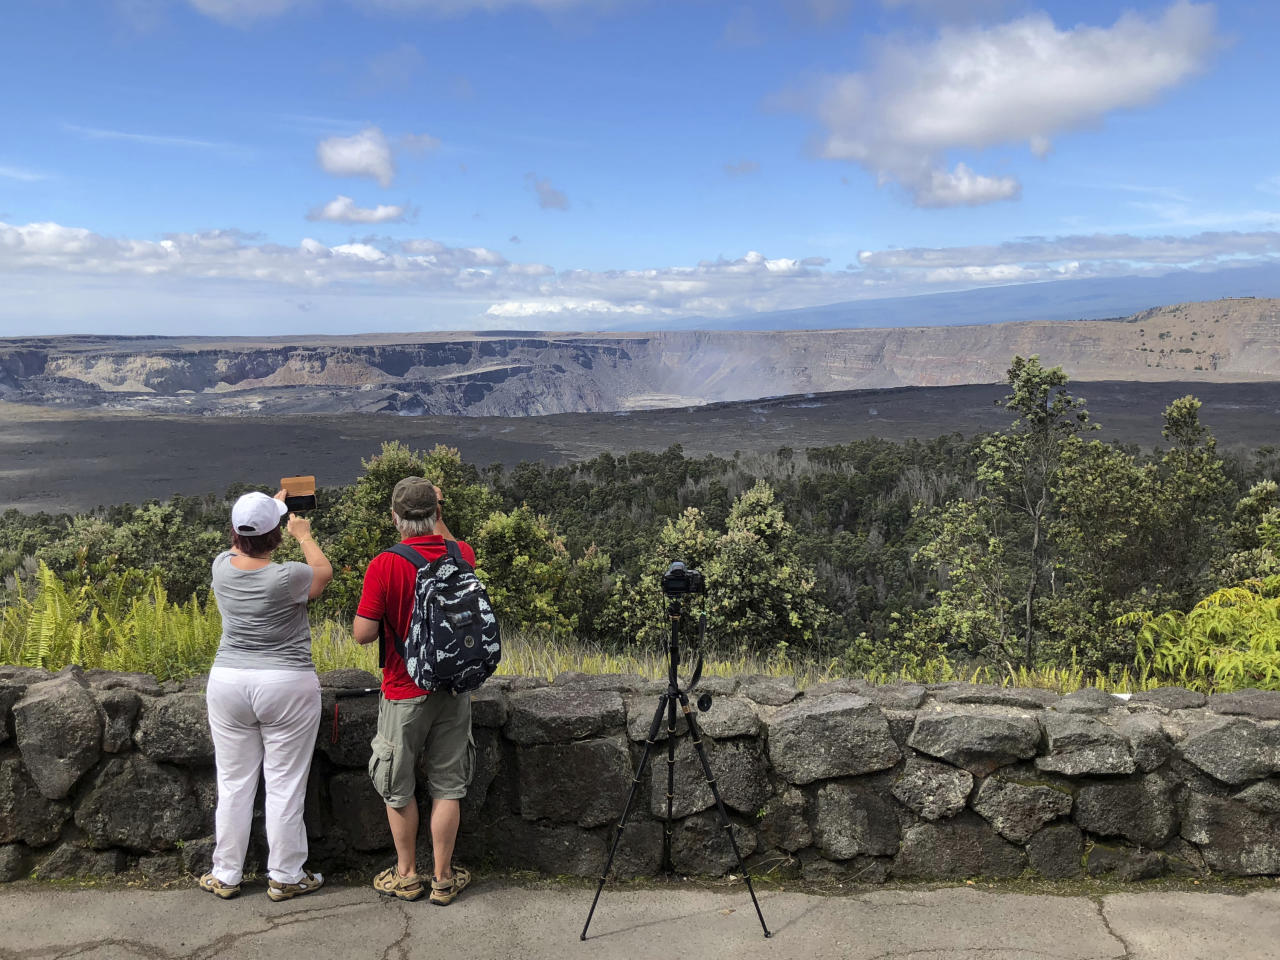 This Saturday, Sept. 22, 2018 photo released by the National Park Service shows tourists on the first day the park was reopened after volcanic activity forced Hawaii Volcanoes National Park to close for more than four months in Hawaii. The eruption destroyed hundreds of homes outside the park while changing the popular summit crater inside the park. (Janice Wei/National Park Service via AP)